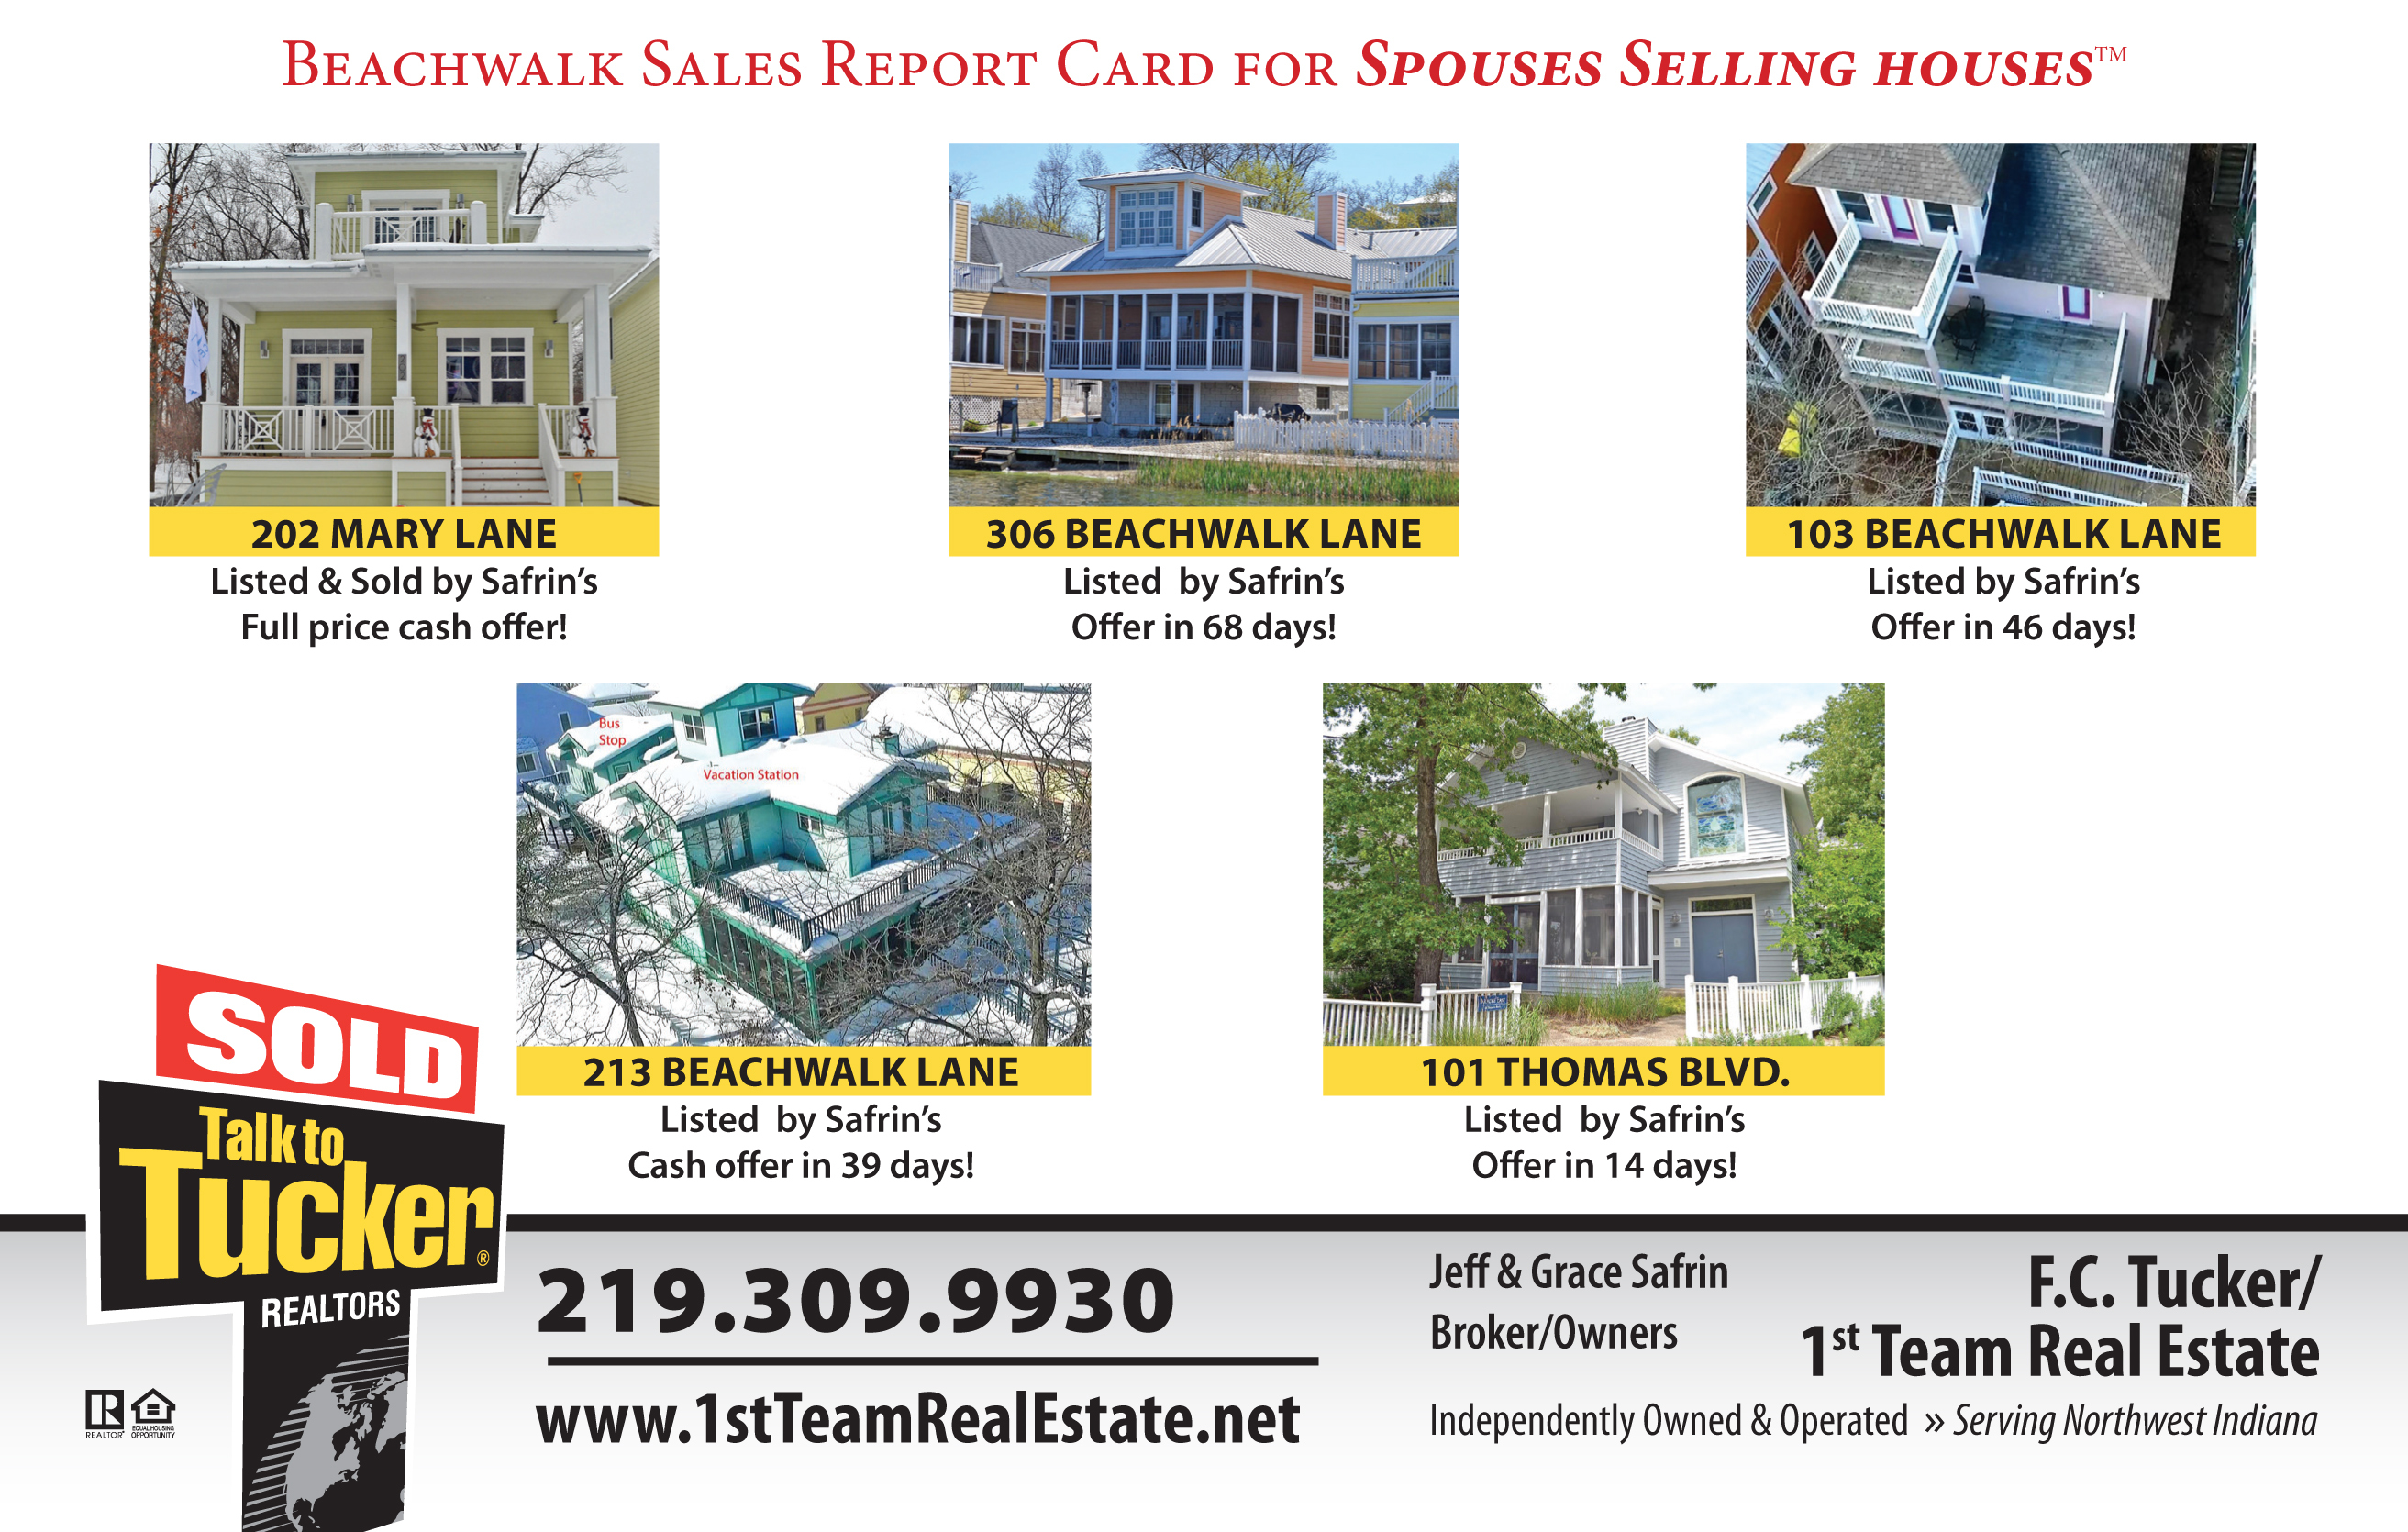 Beachwalk Resort Homes Sold by Spouses Selling Houses